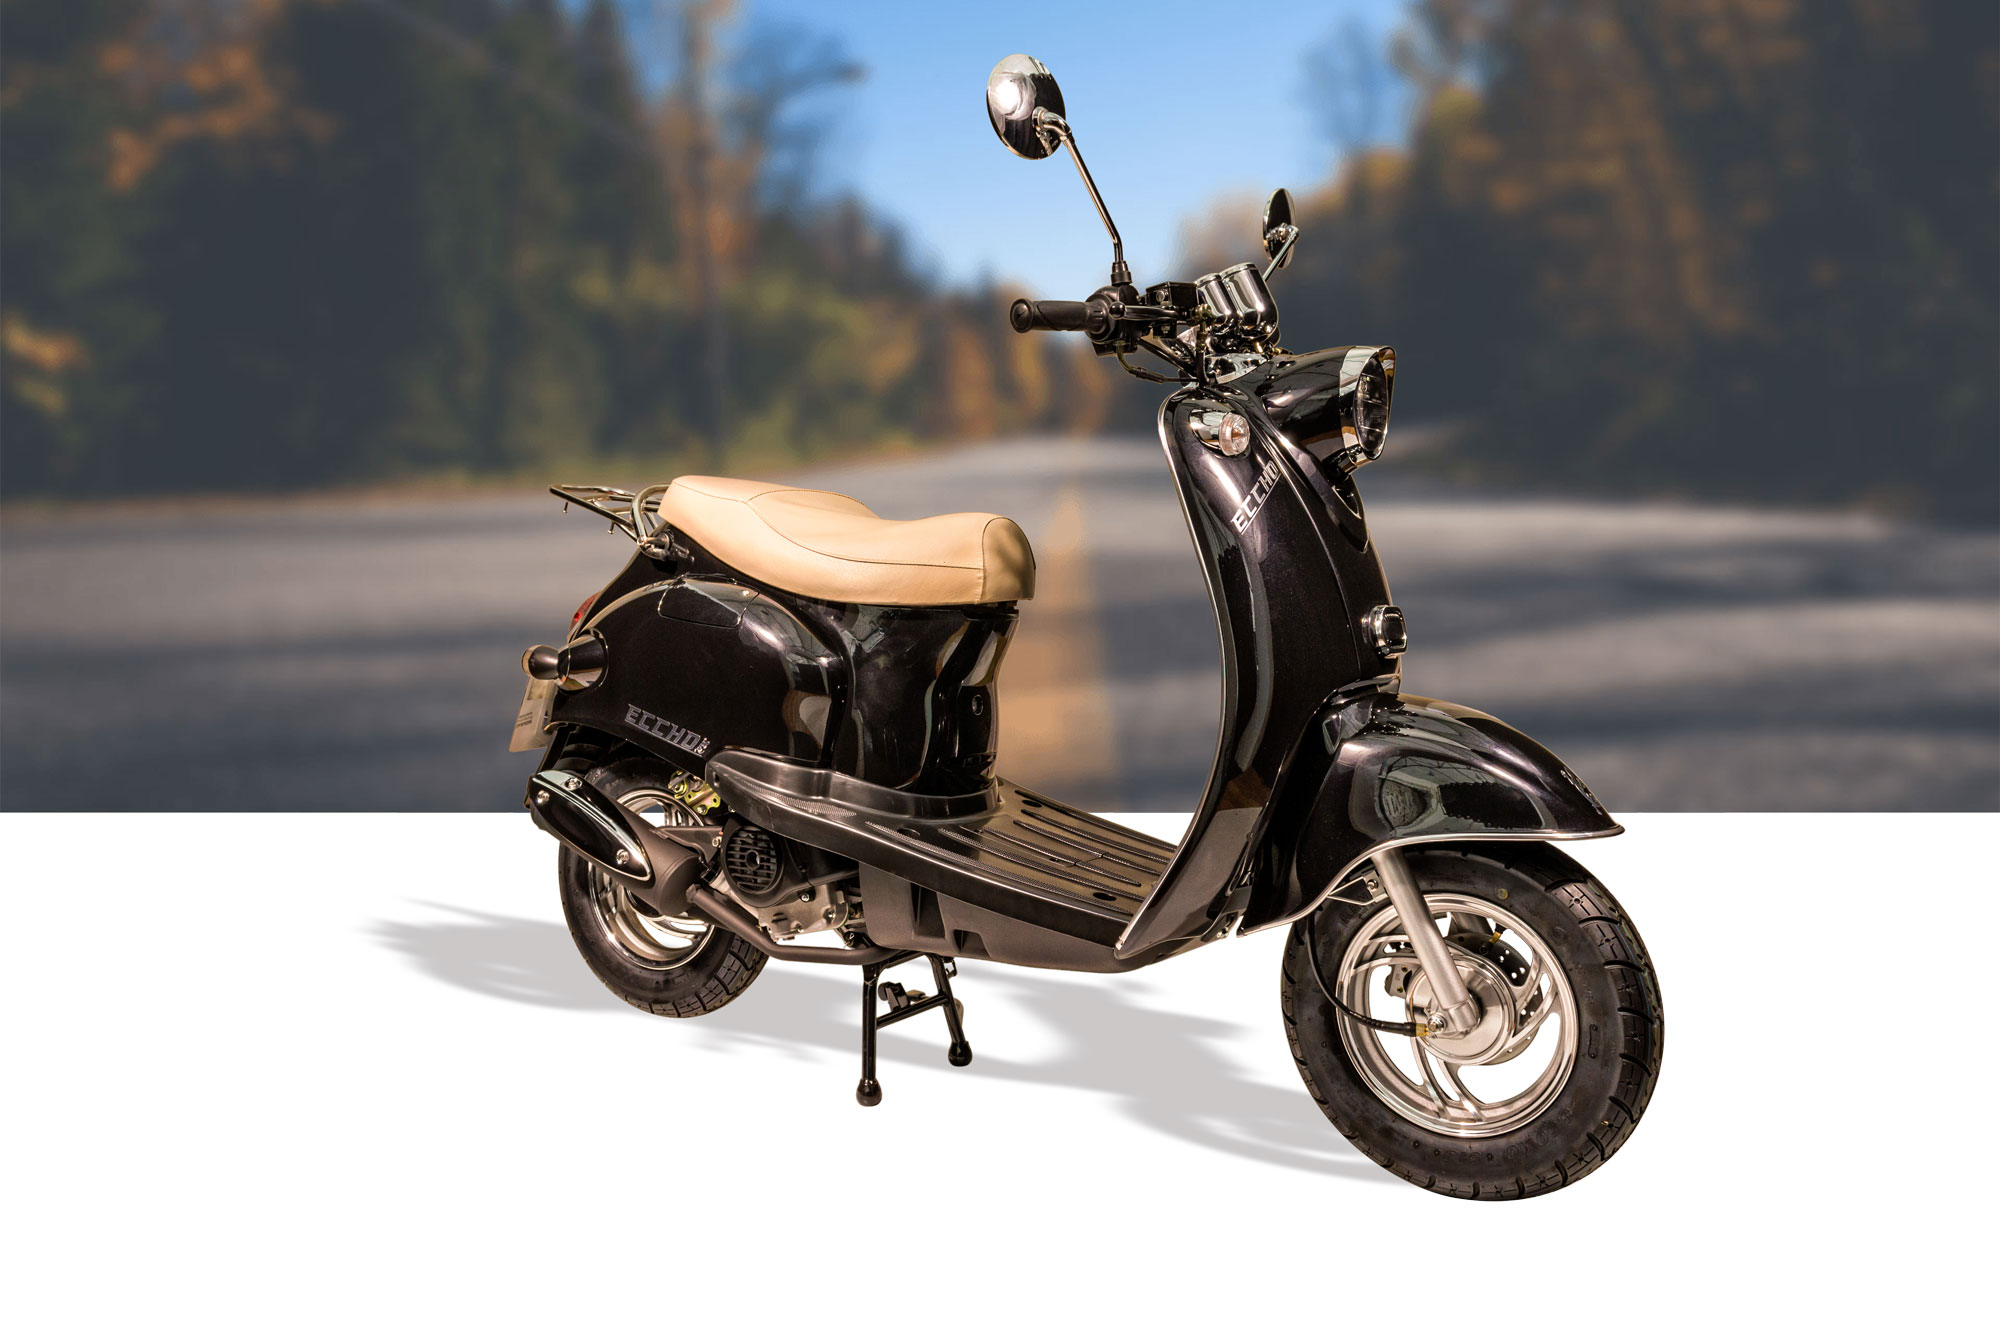 SCOOTER-50-ECCHO-RETRO-II-EFI-04